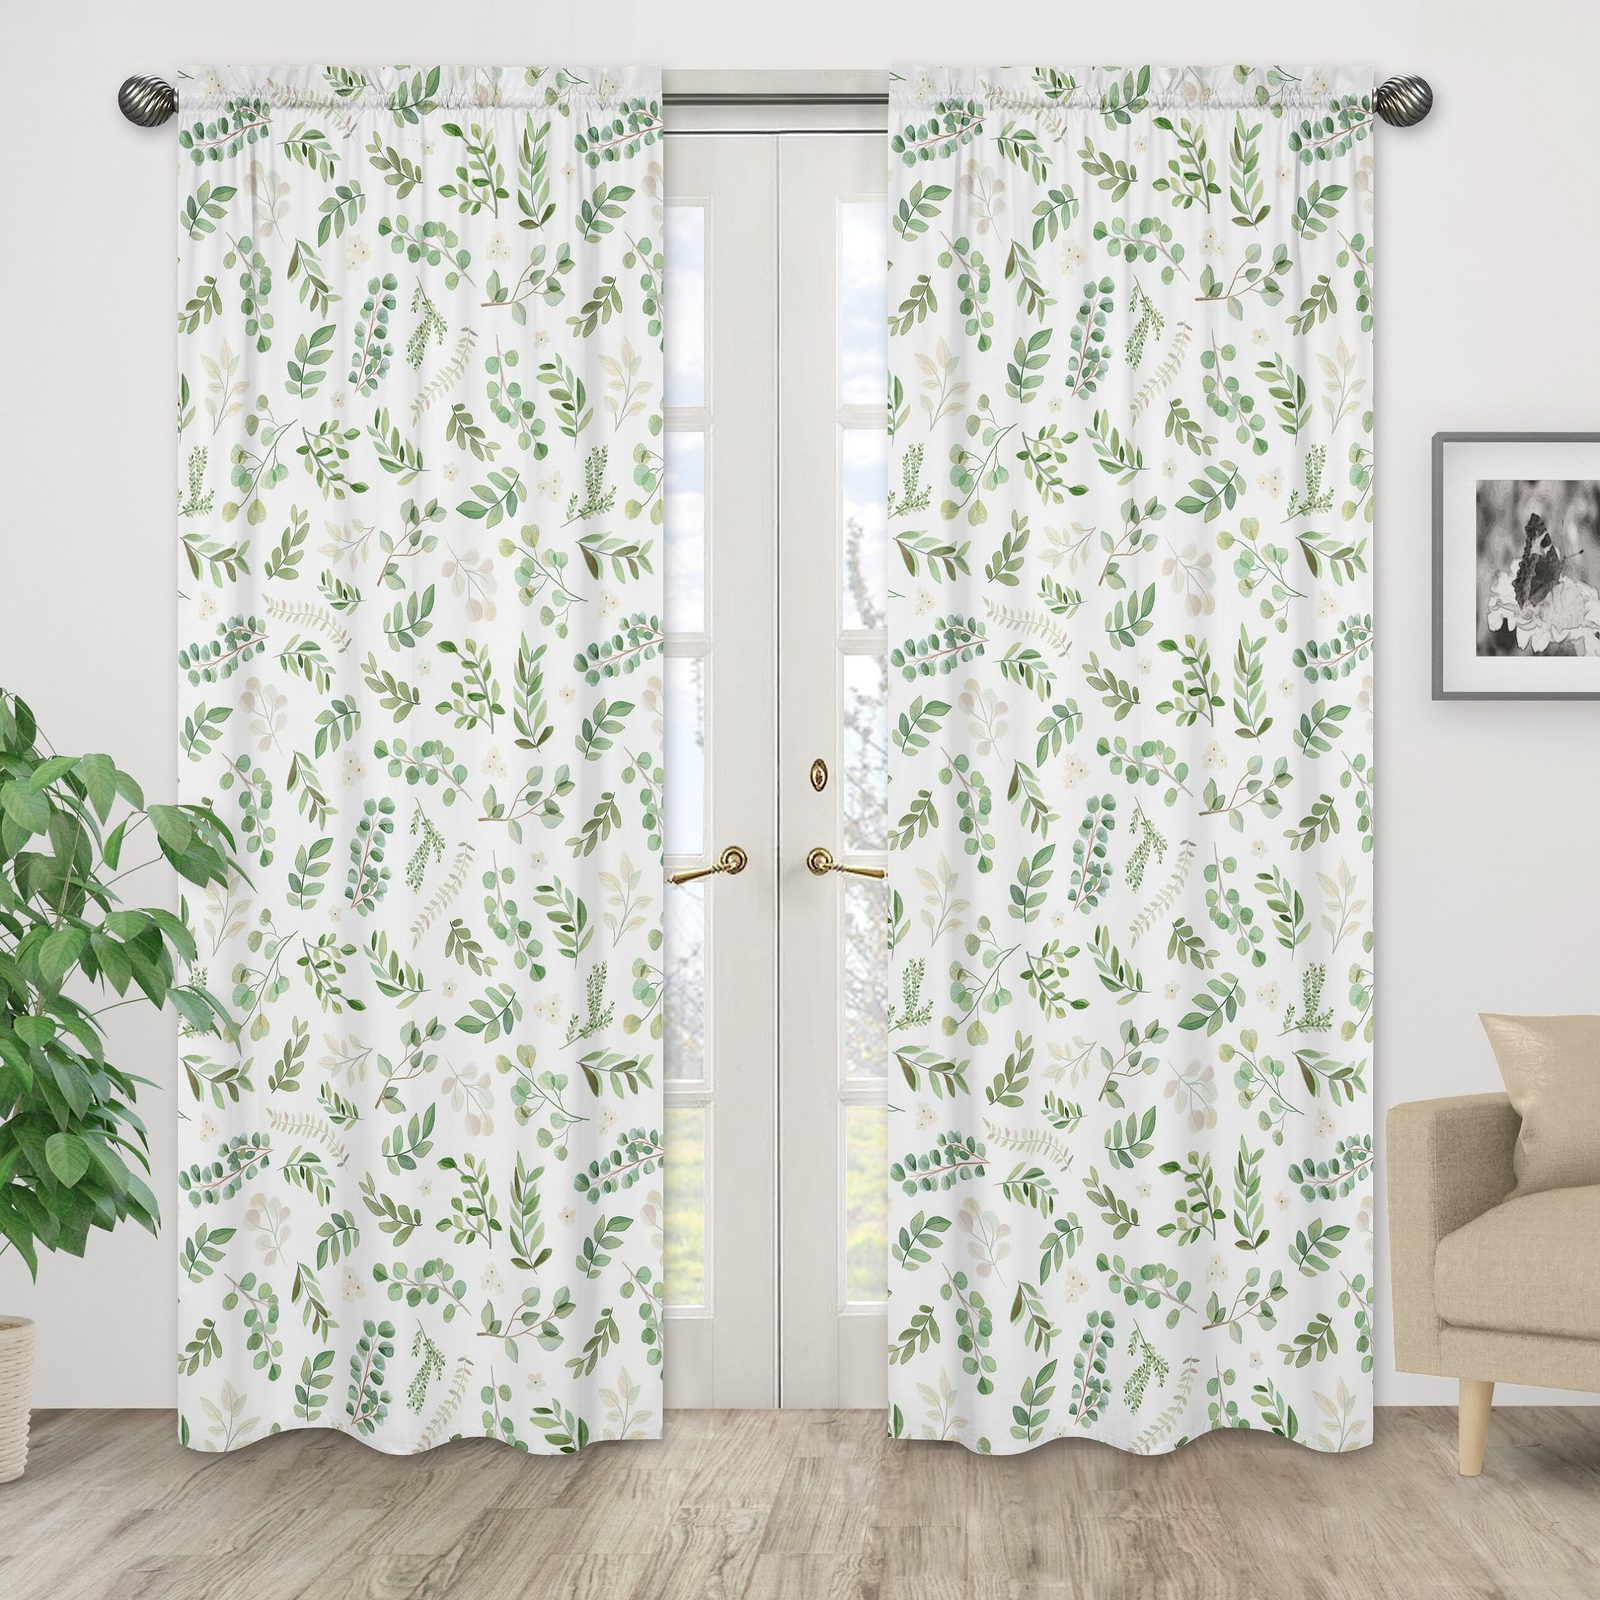 Botanical Green and White Curtains